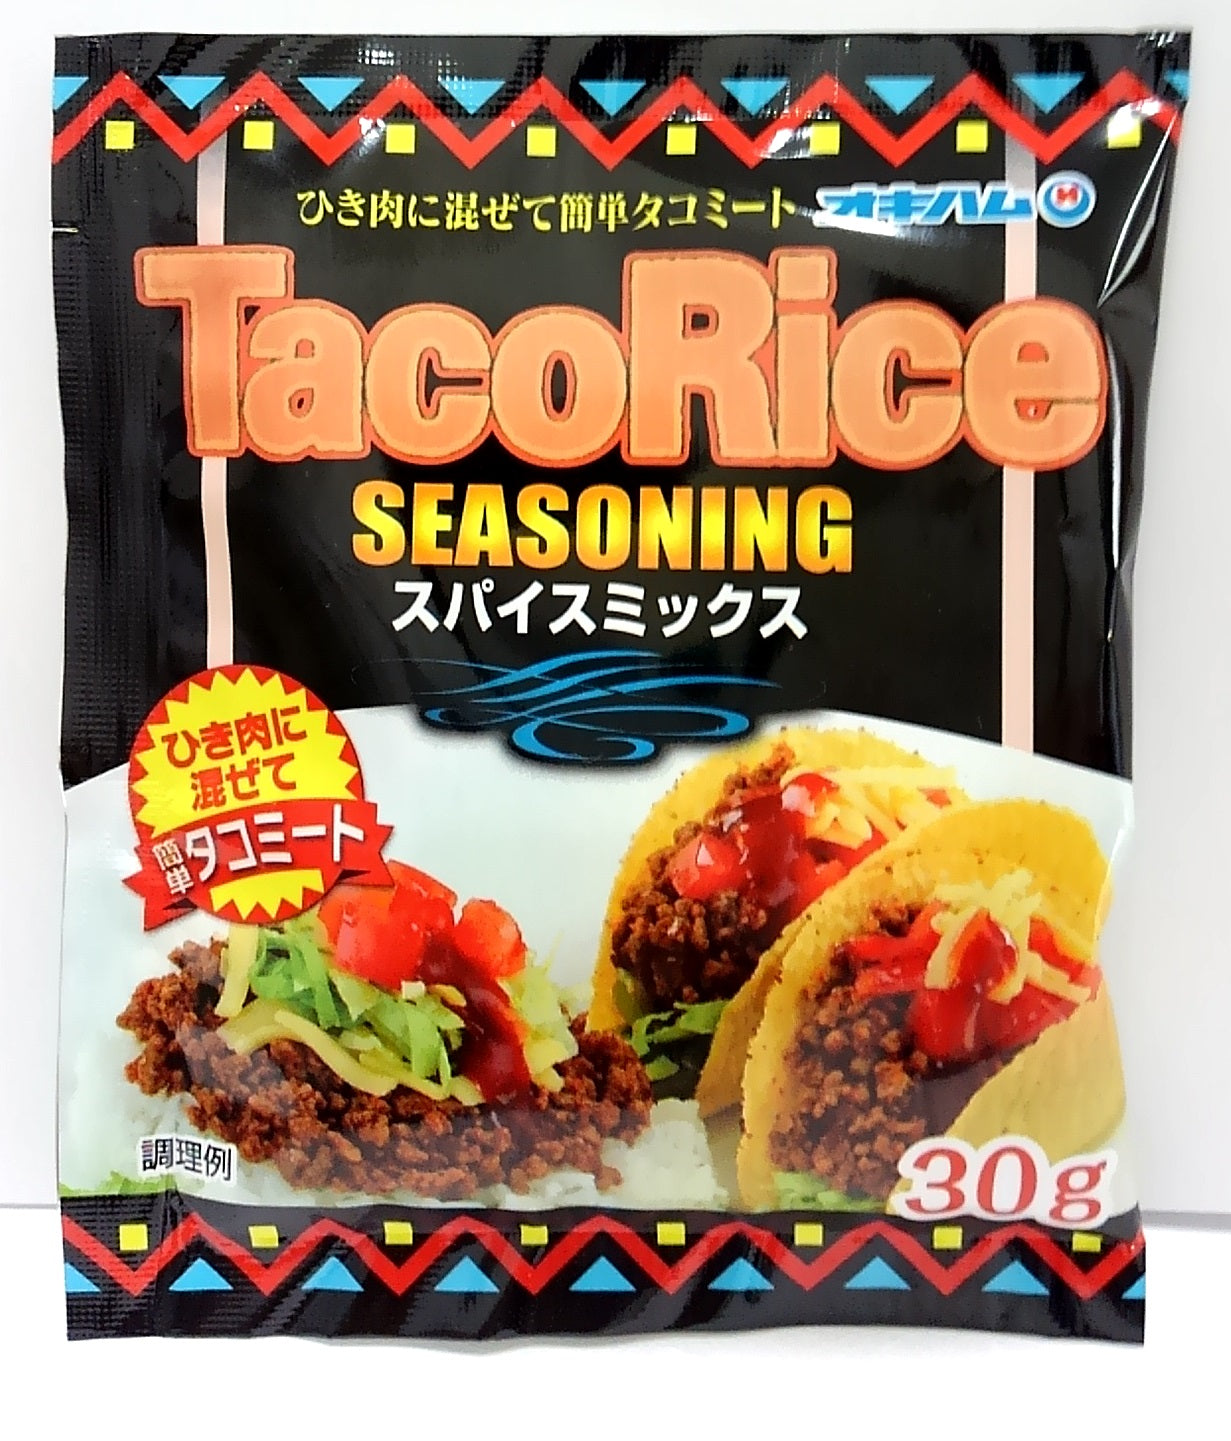 Taco Rice Seasoning ~ Spice Mix for Minced Meat ~ 30g - Kenko Root